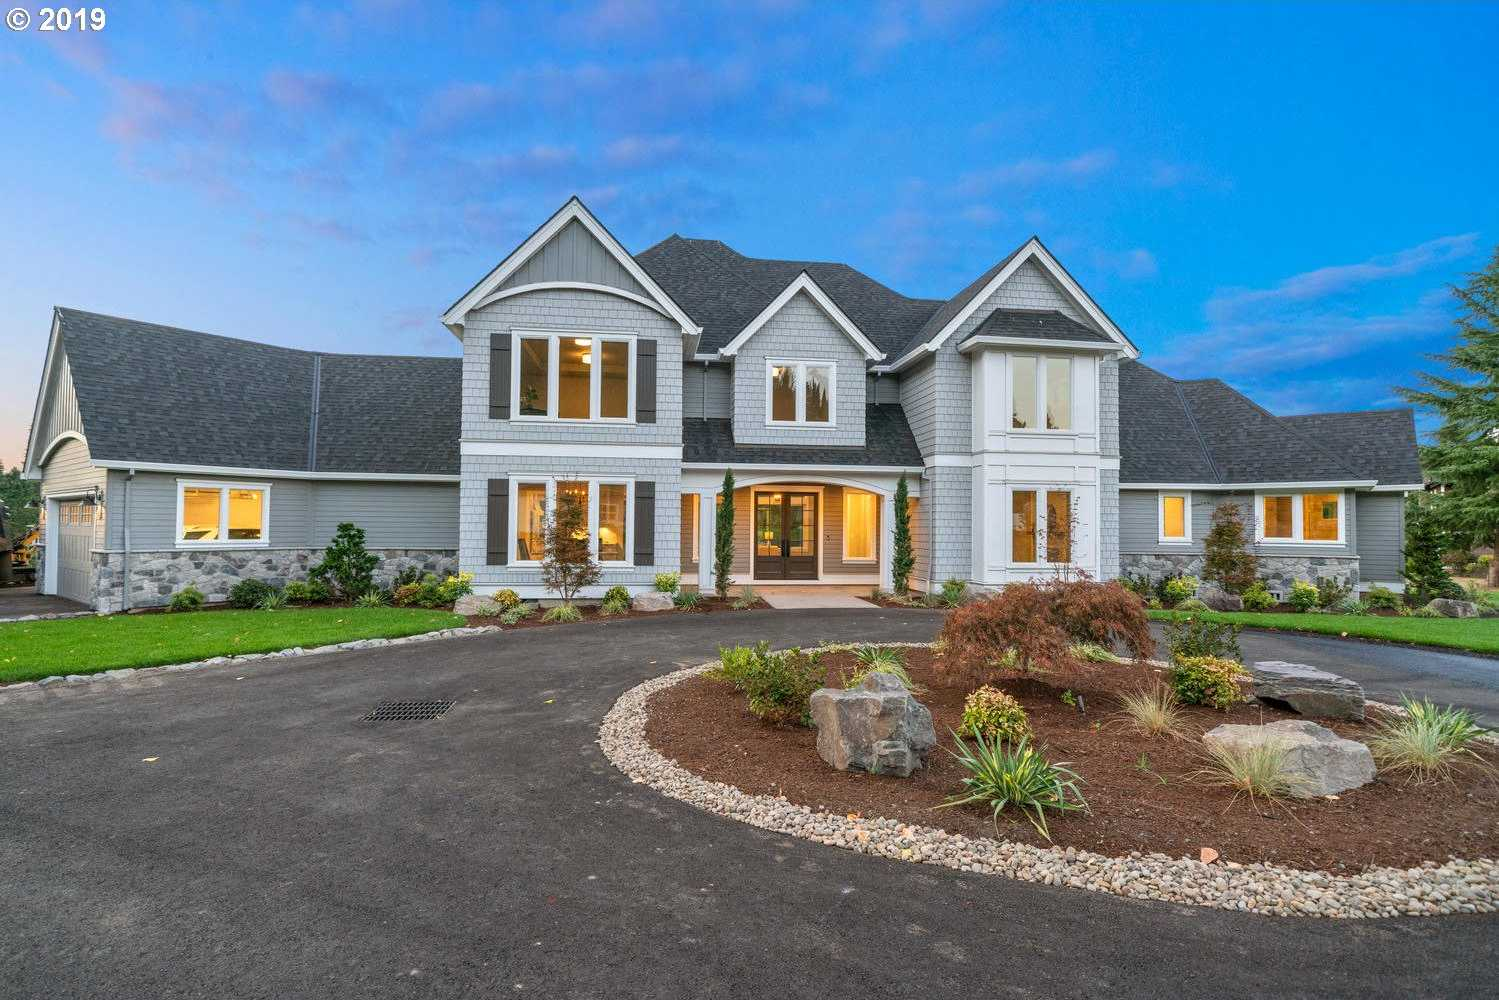 $1,800,000 - 4Br/4Ba -  for Sale in Willamette - Close In Country, West Linn